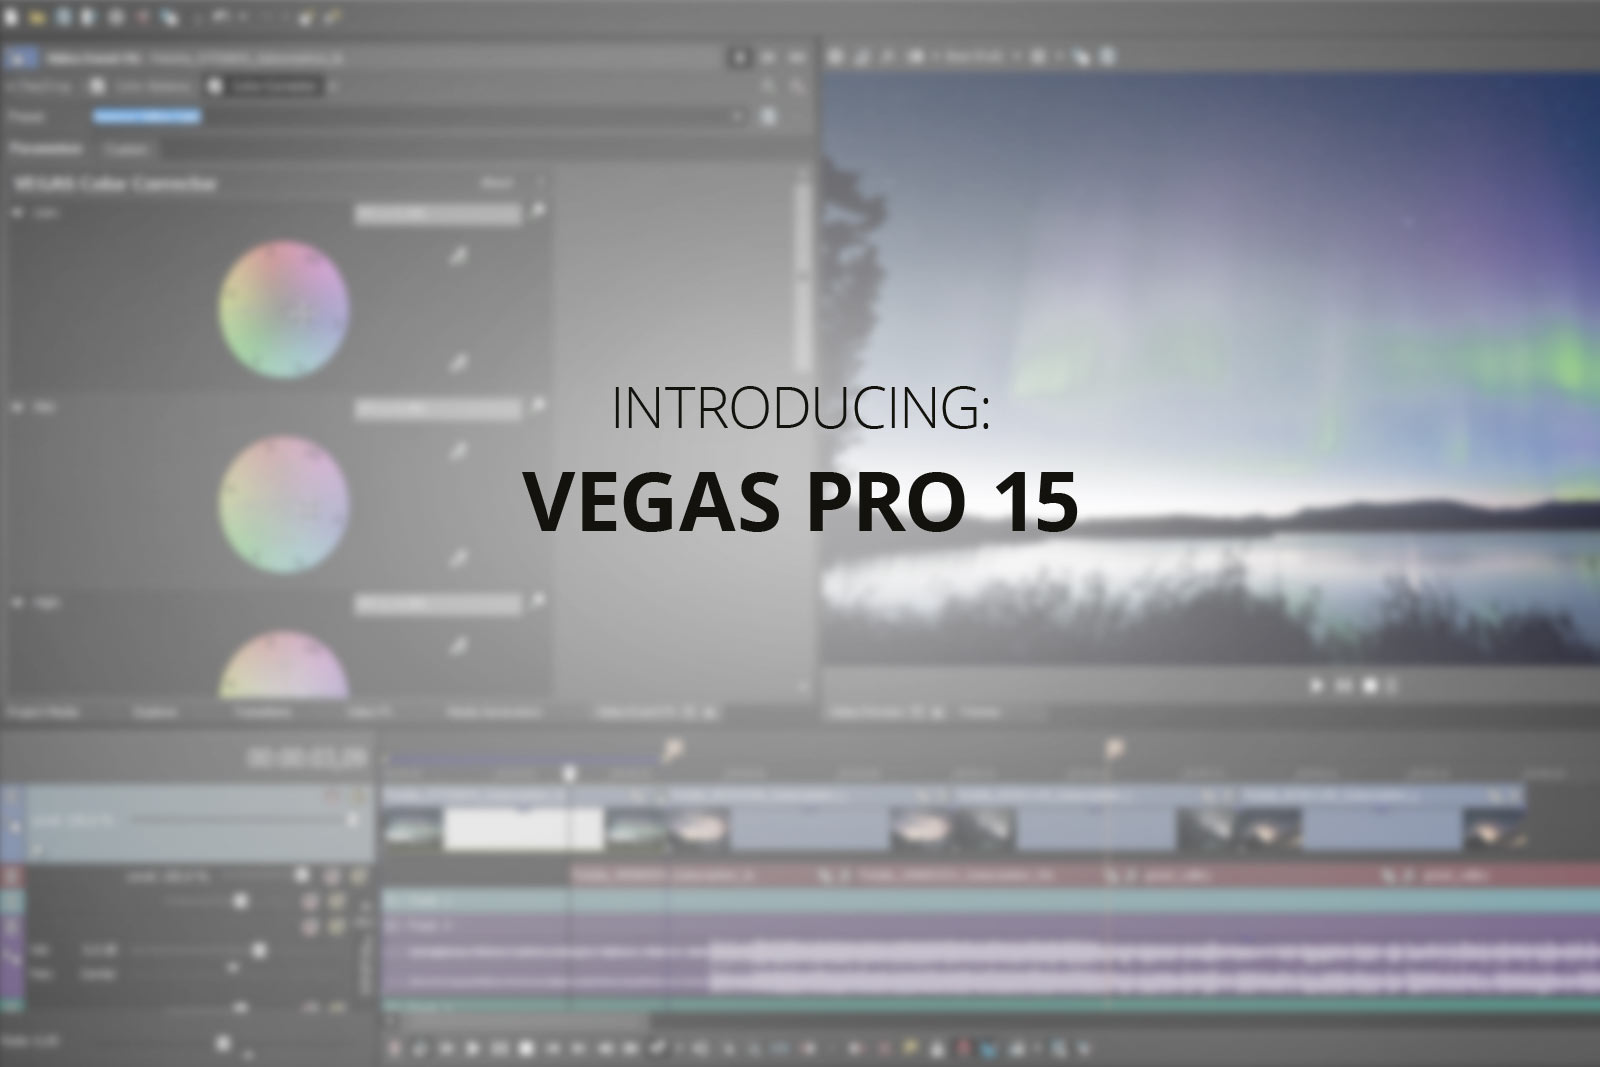 Preview bild: Vegas Pro 15 video editing screen